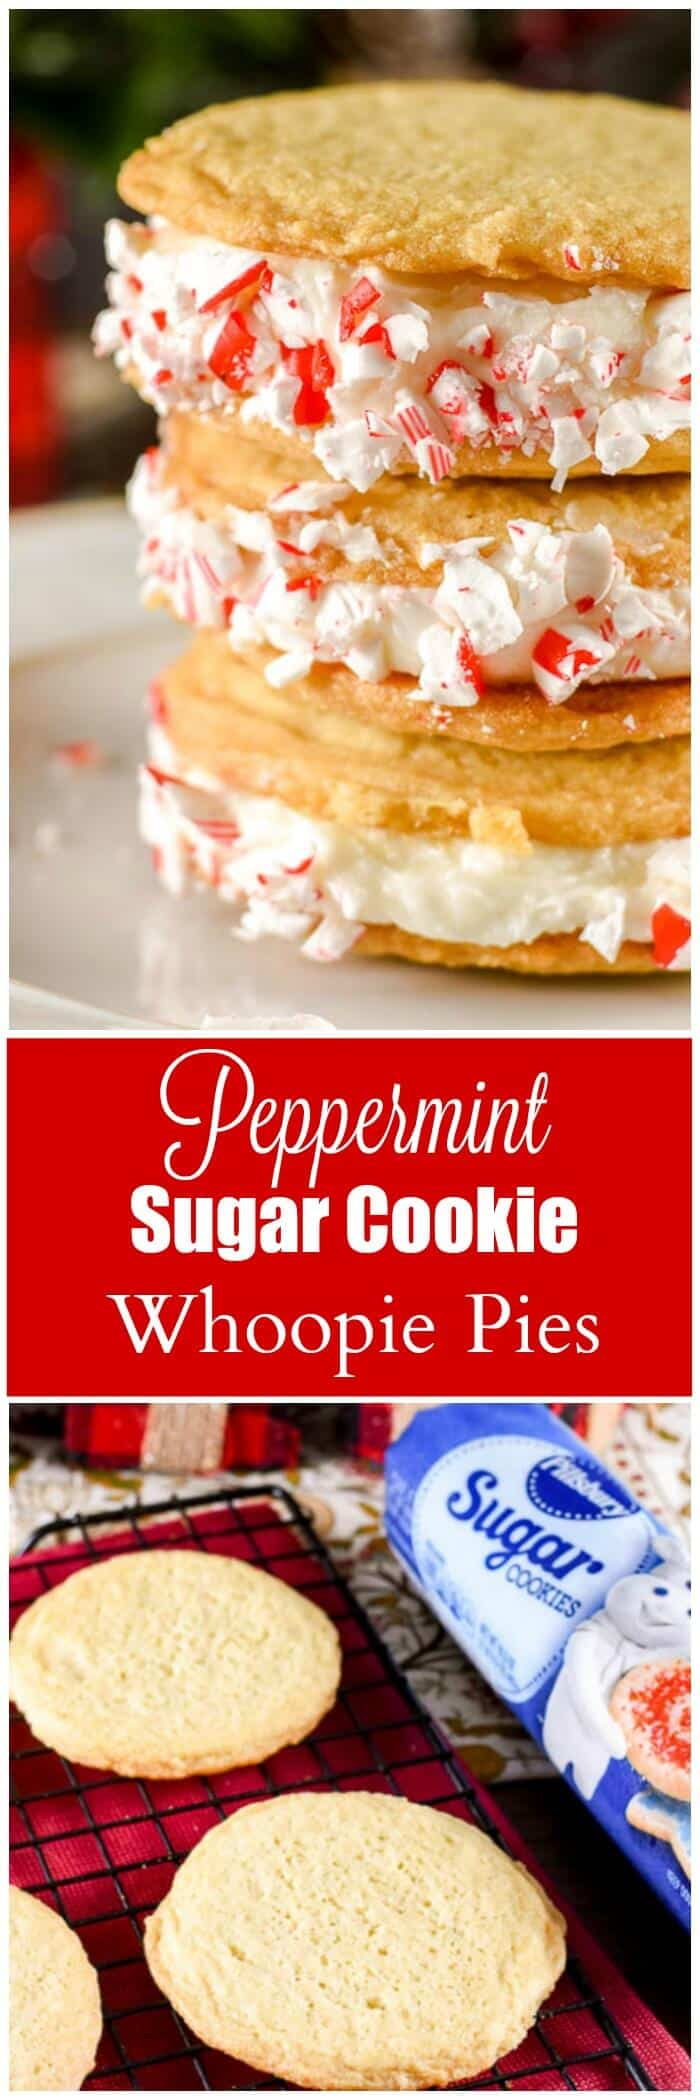 Peppermint Sugar Cookie Whoopie Pies Long Pin.